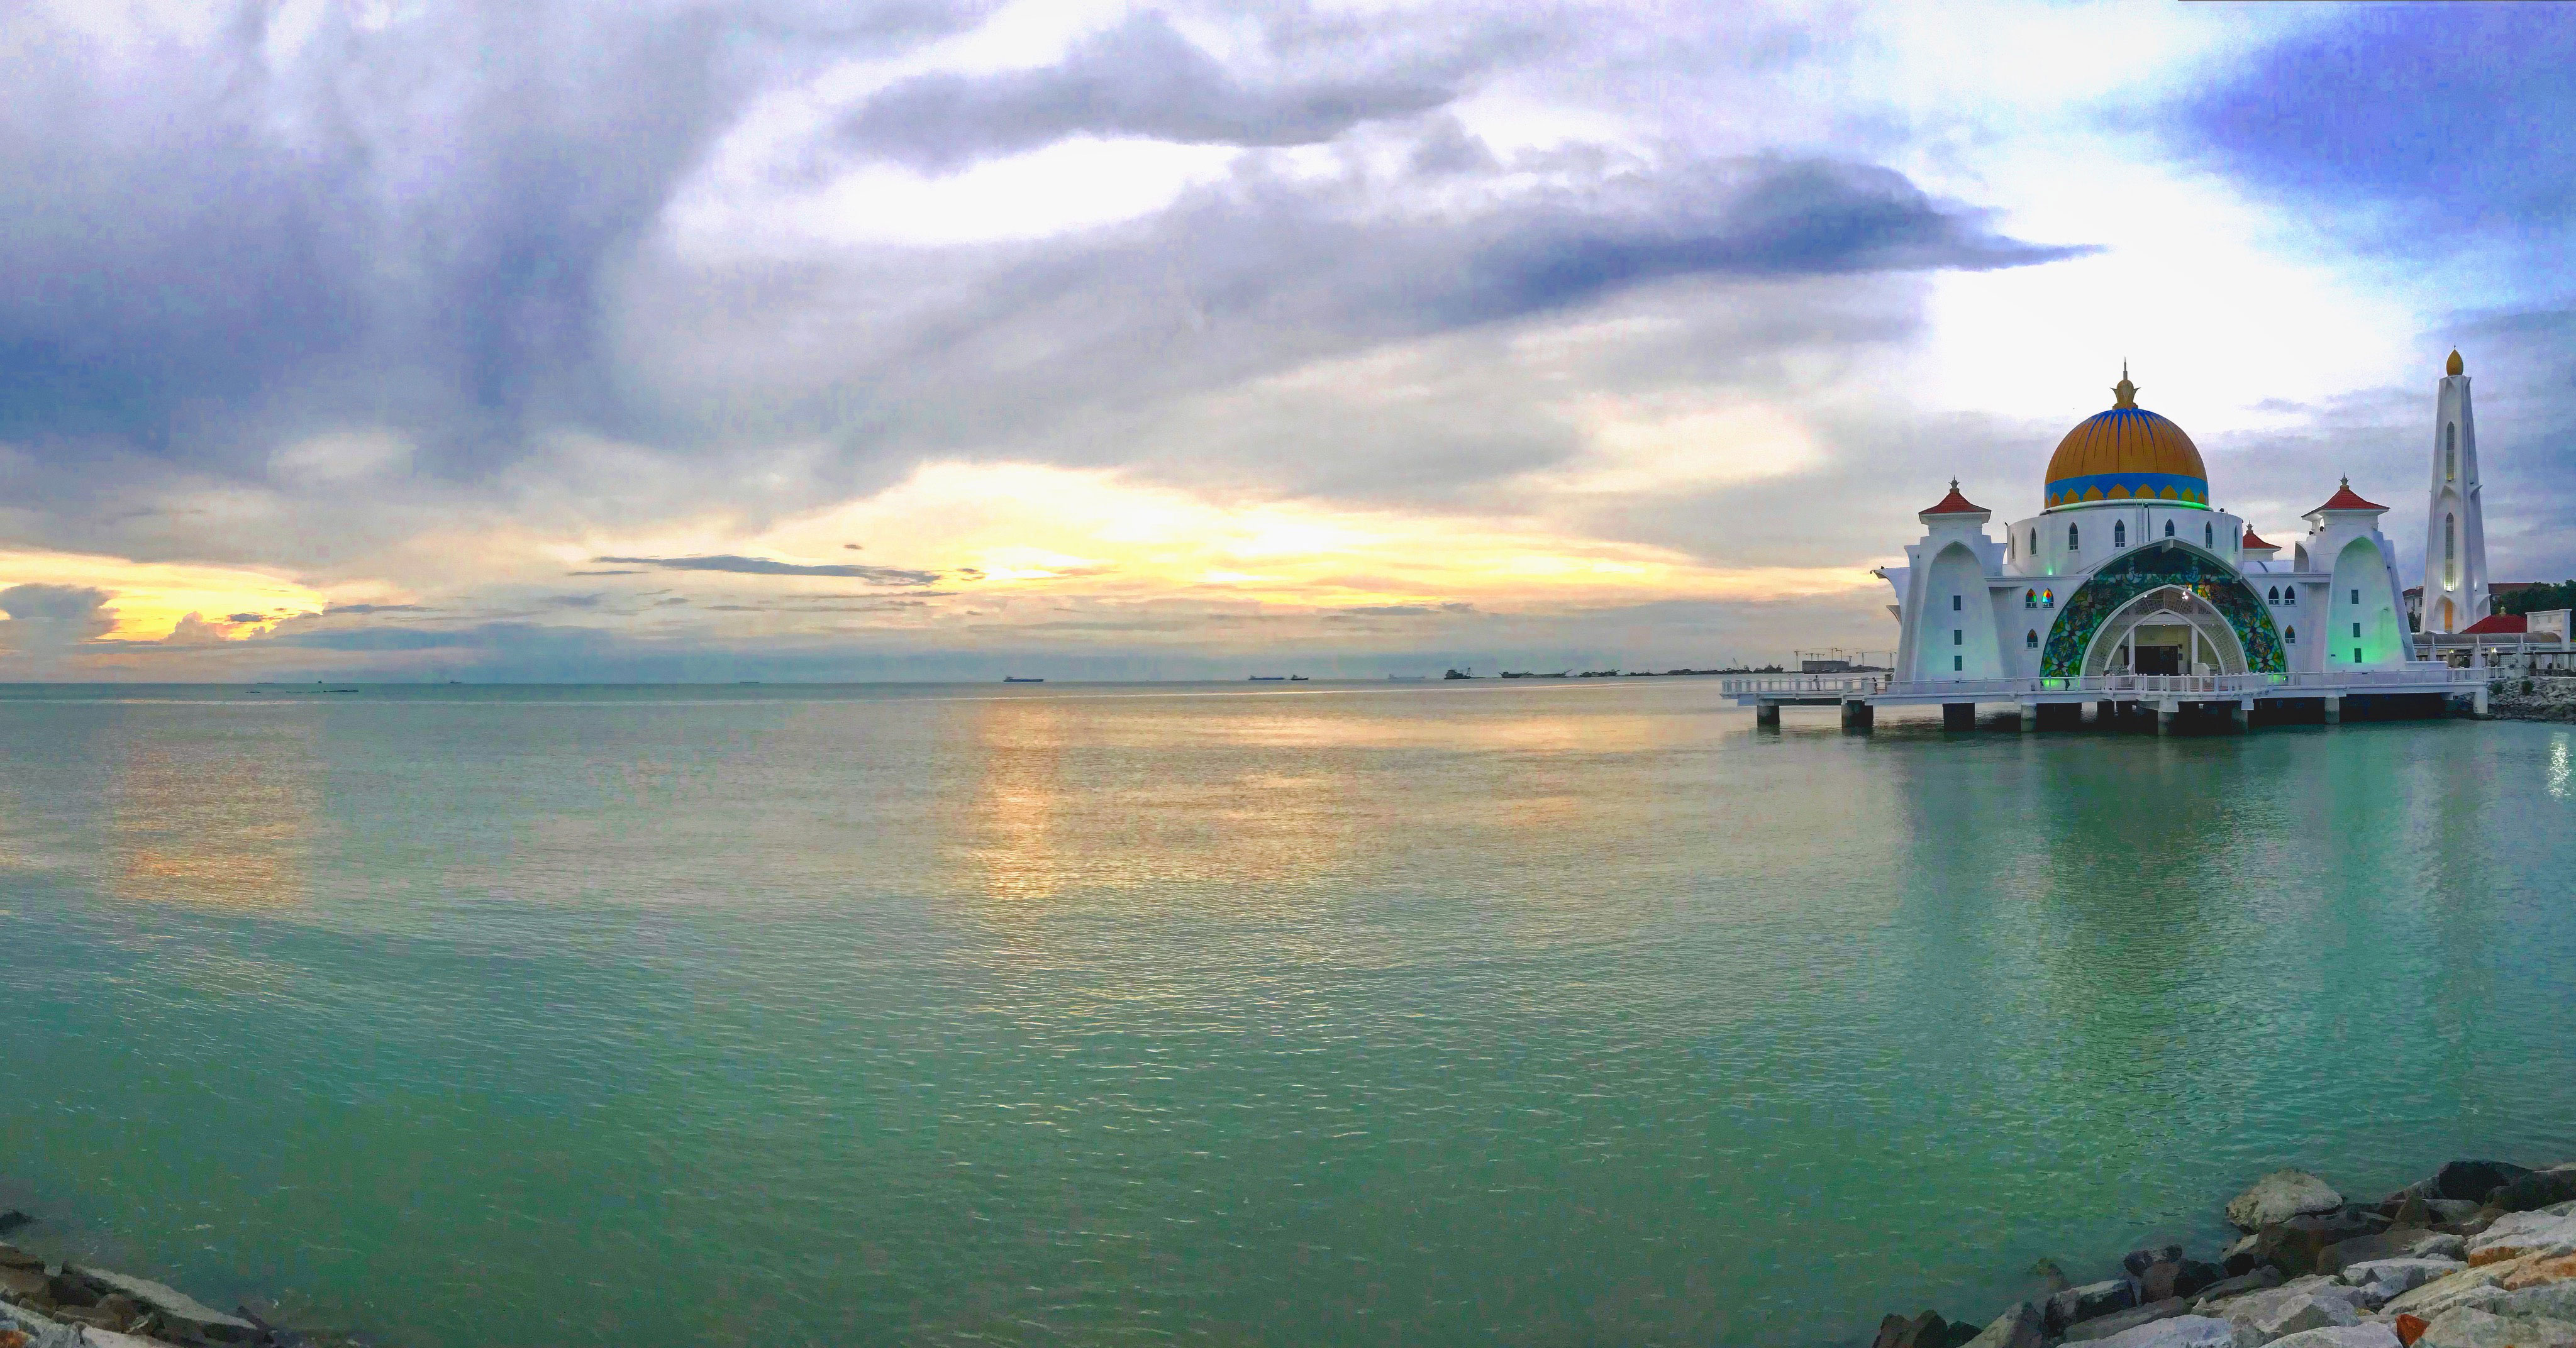 Malacca floating mosque at sunset,panaroma